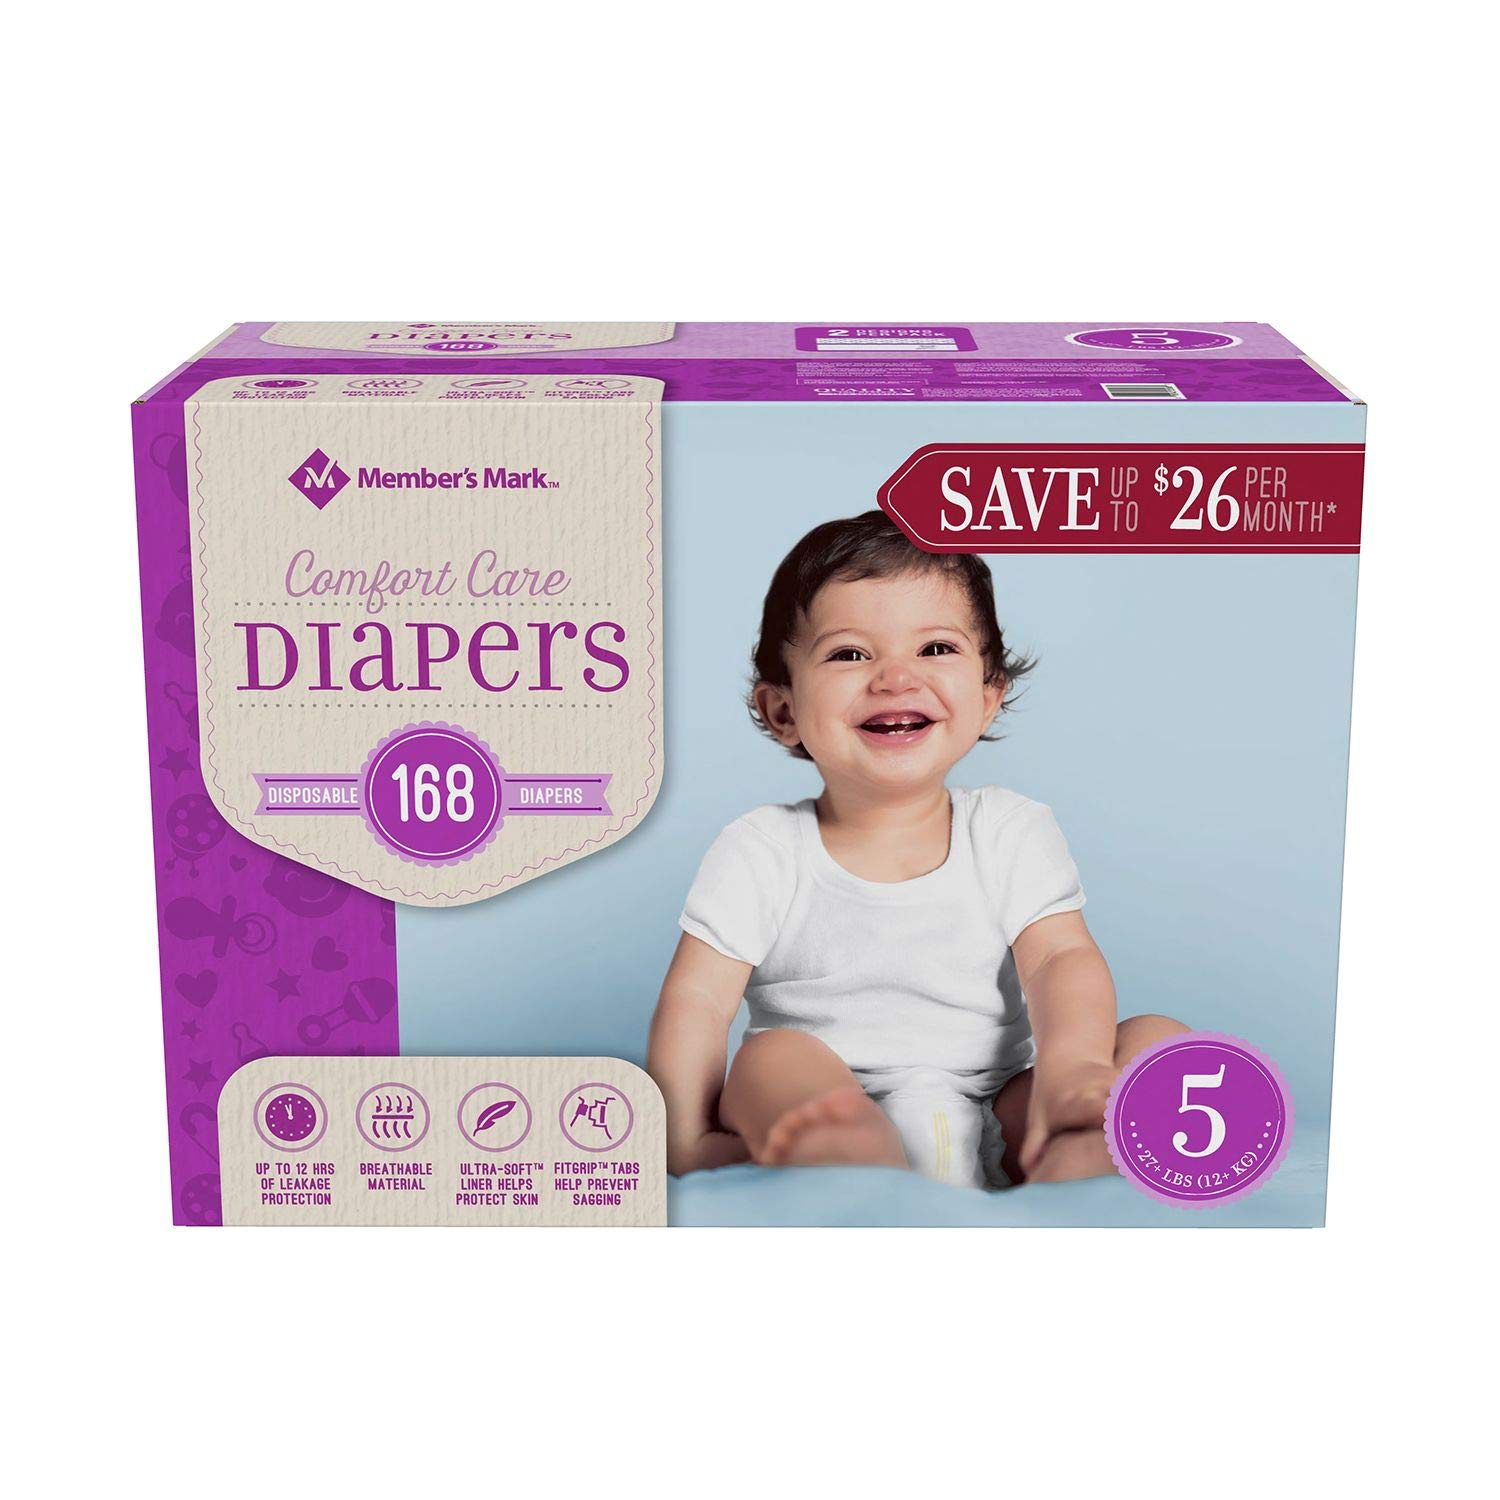 Member's Mark Comfort Care Baby Diapers Size 5 - 168 ct. (27+lbs.) by Member's Mark